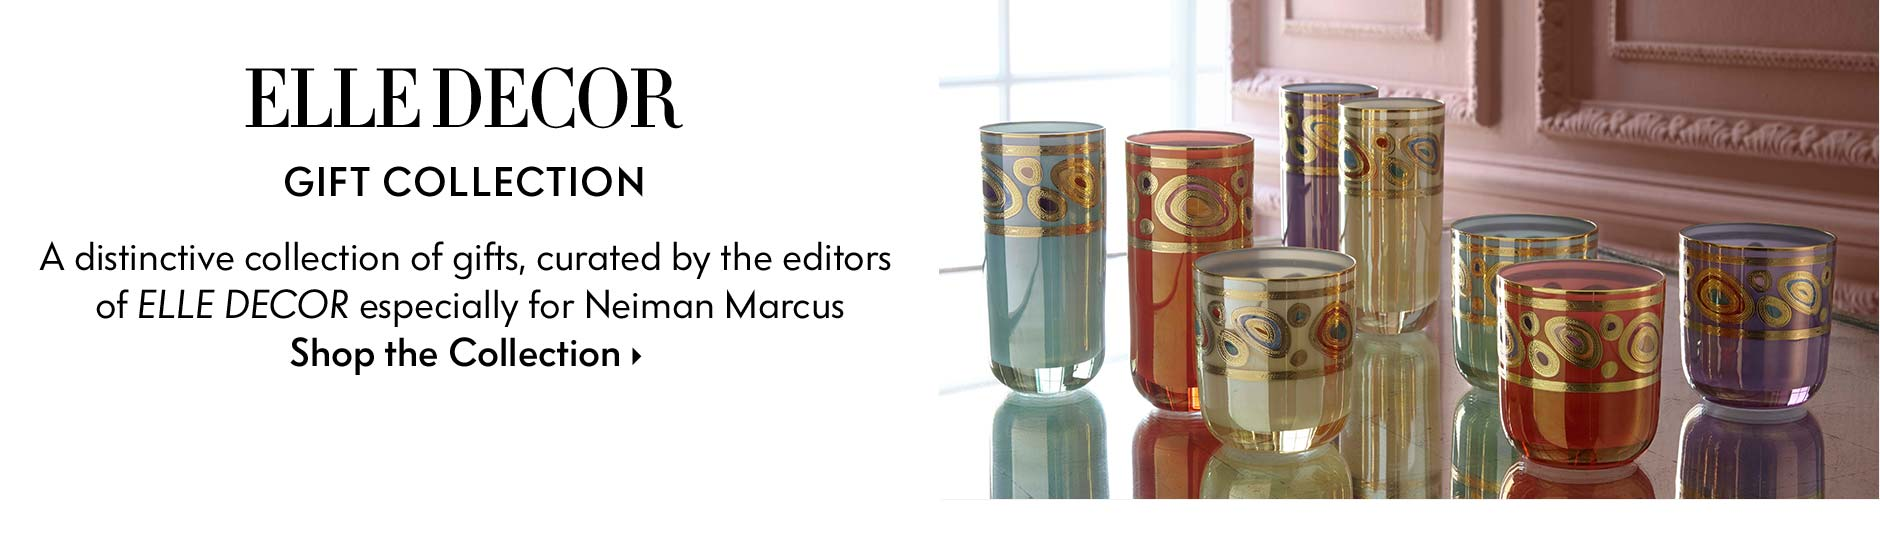 Elle Decor Gift Collection - A distinctive collection of gifts, curated by the editors of Elle Decor especially for Neiman Marcus - shop the collection